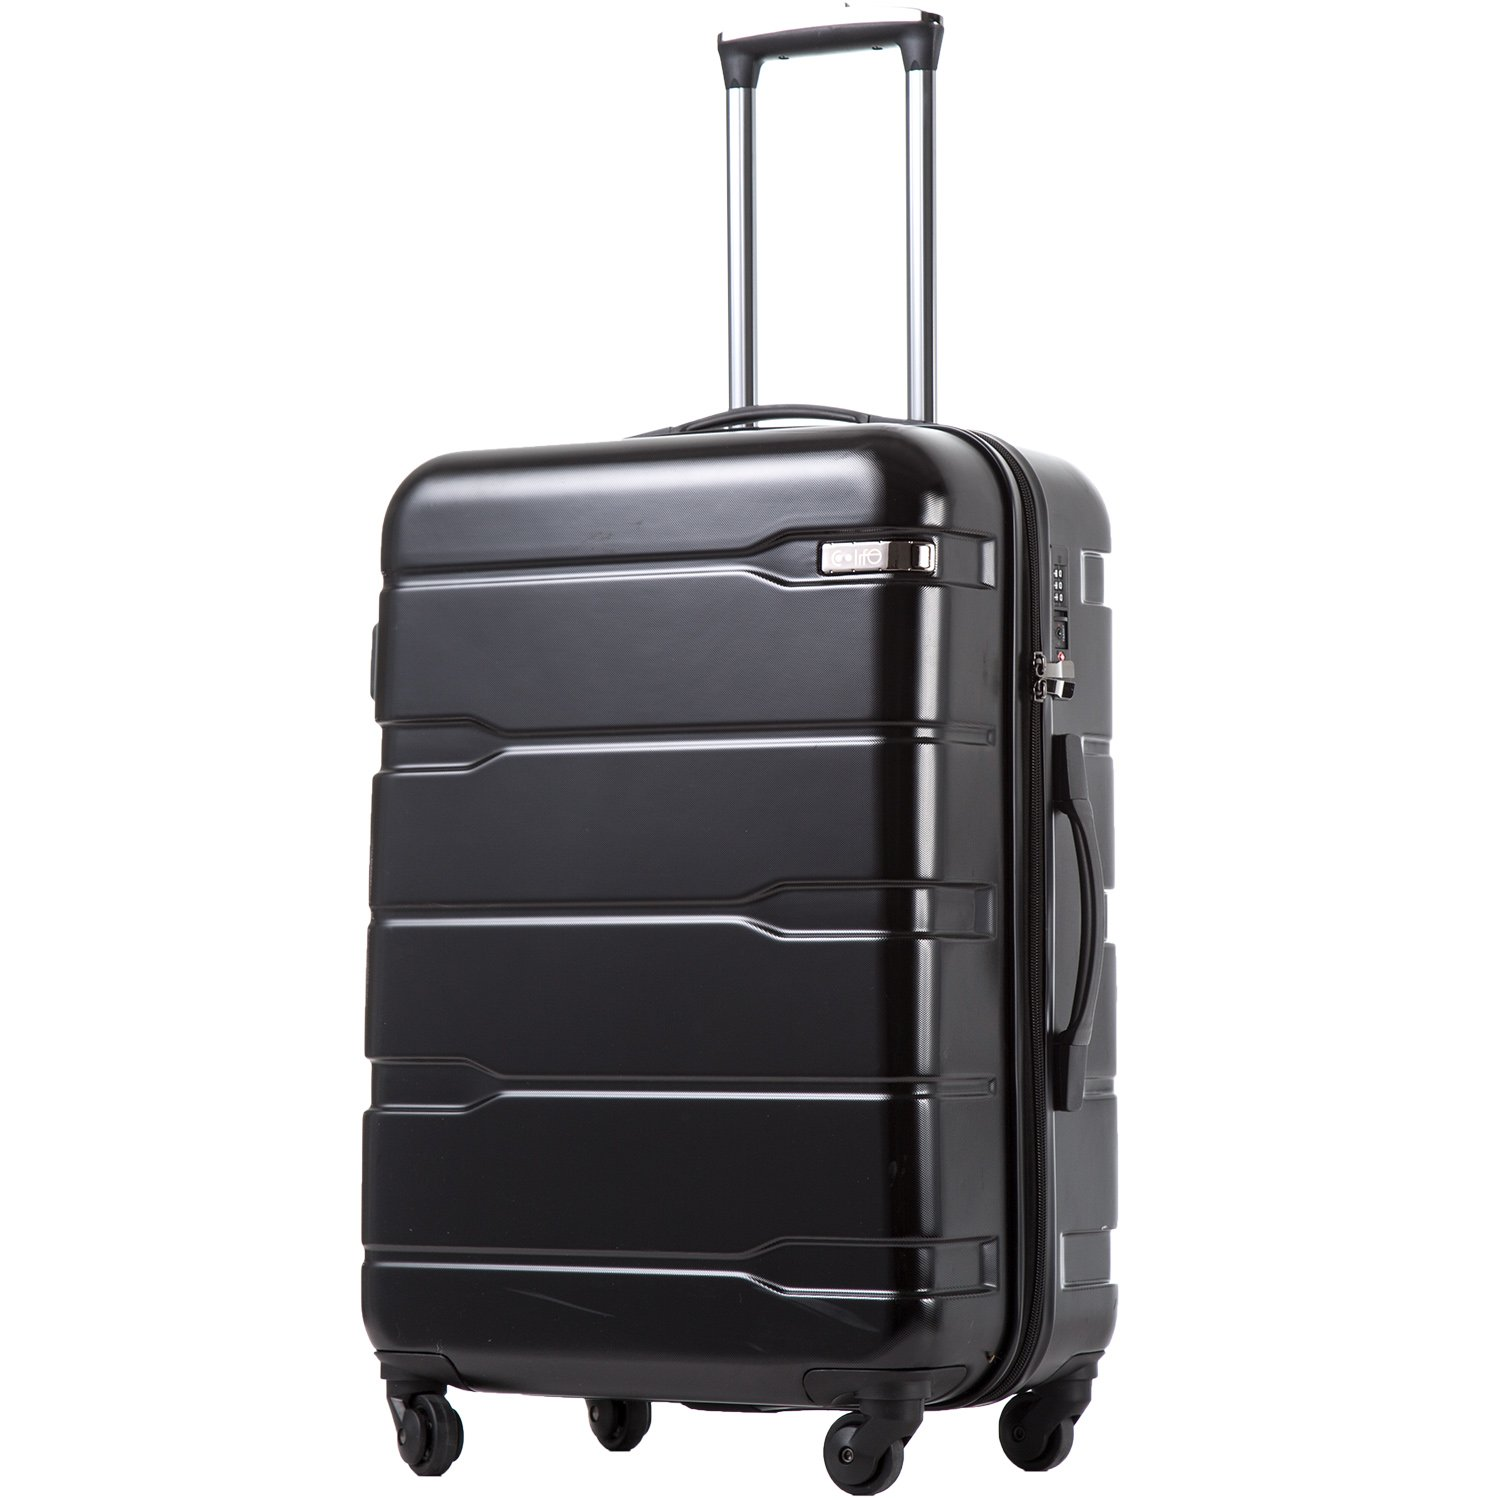 Coolife Luggage Expandable Suitcase PC+ABS Spinner 20in 24in 28in Carry on (black., L(28in).) by Coolife